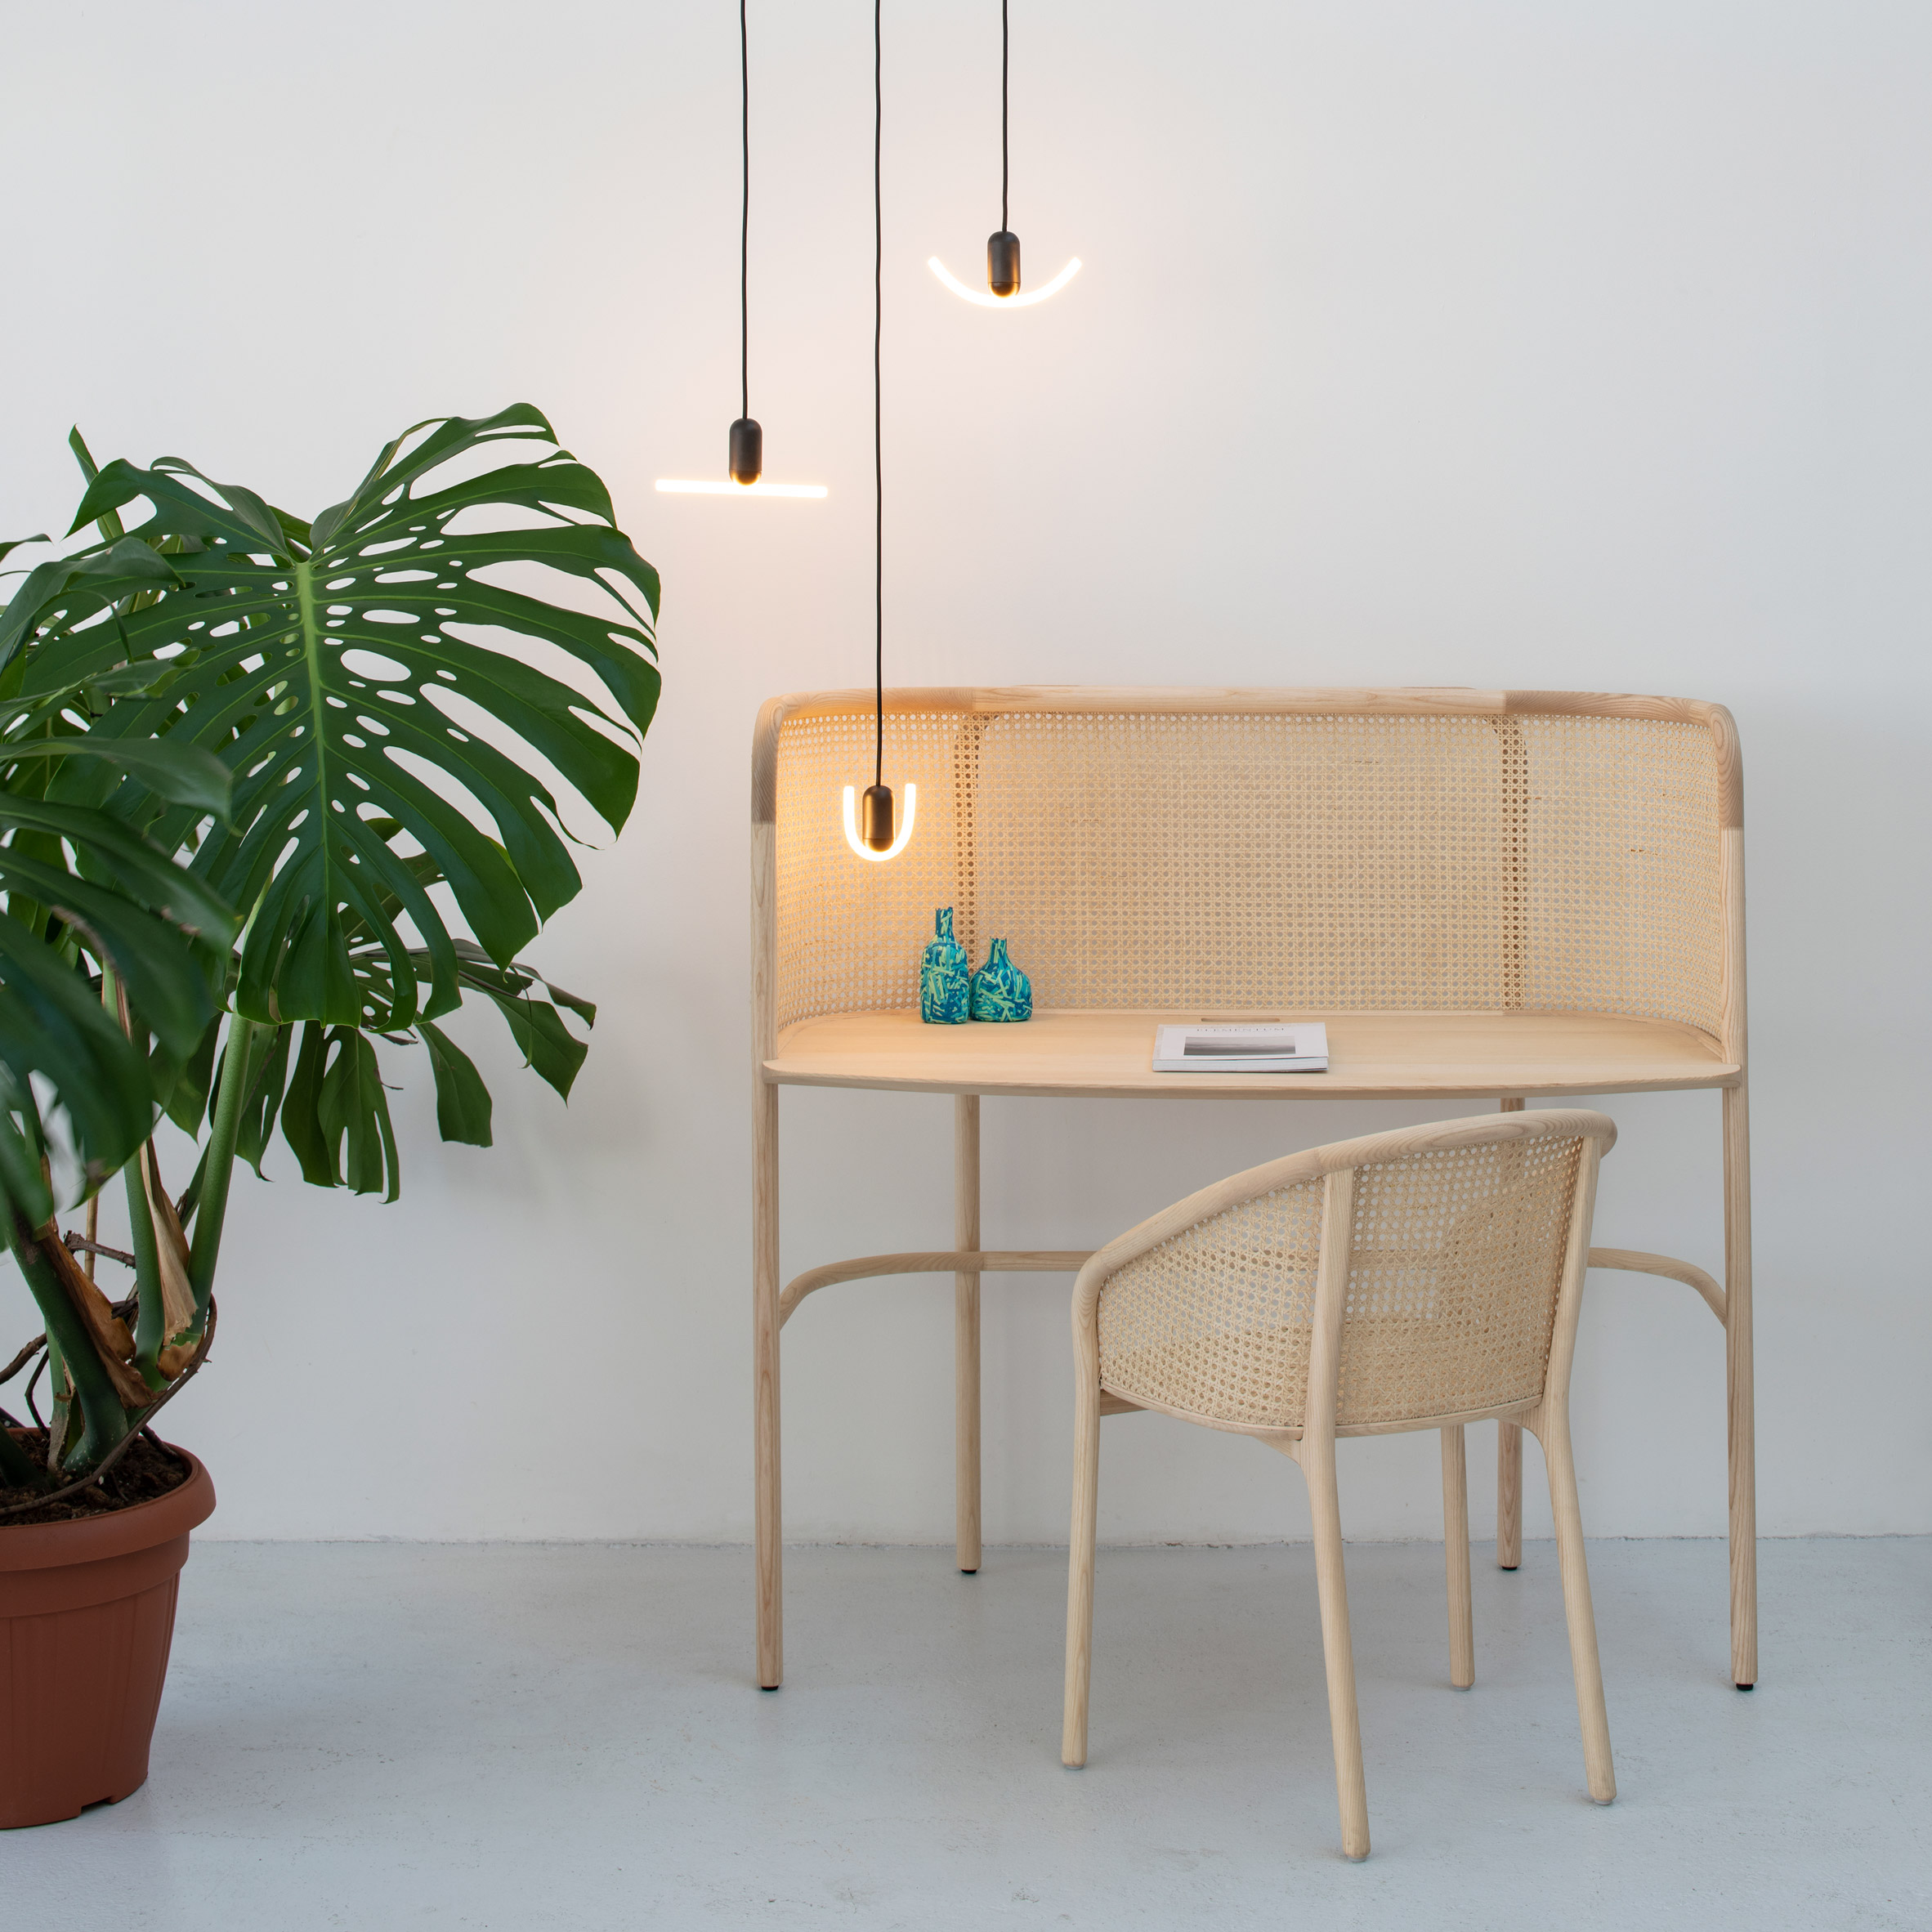 Beem's inaugural lighting collection features two graphic LED pendants